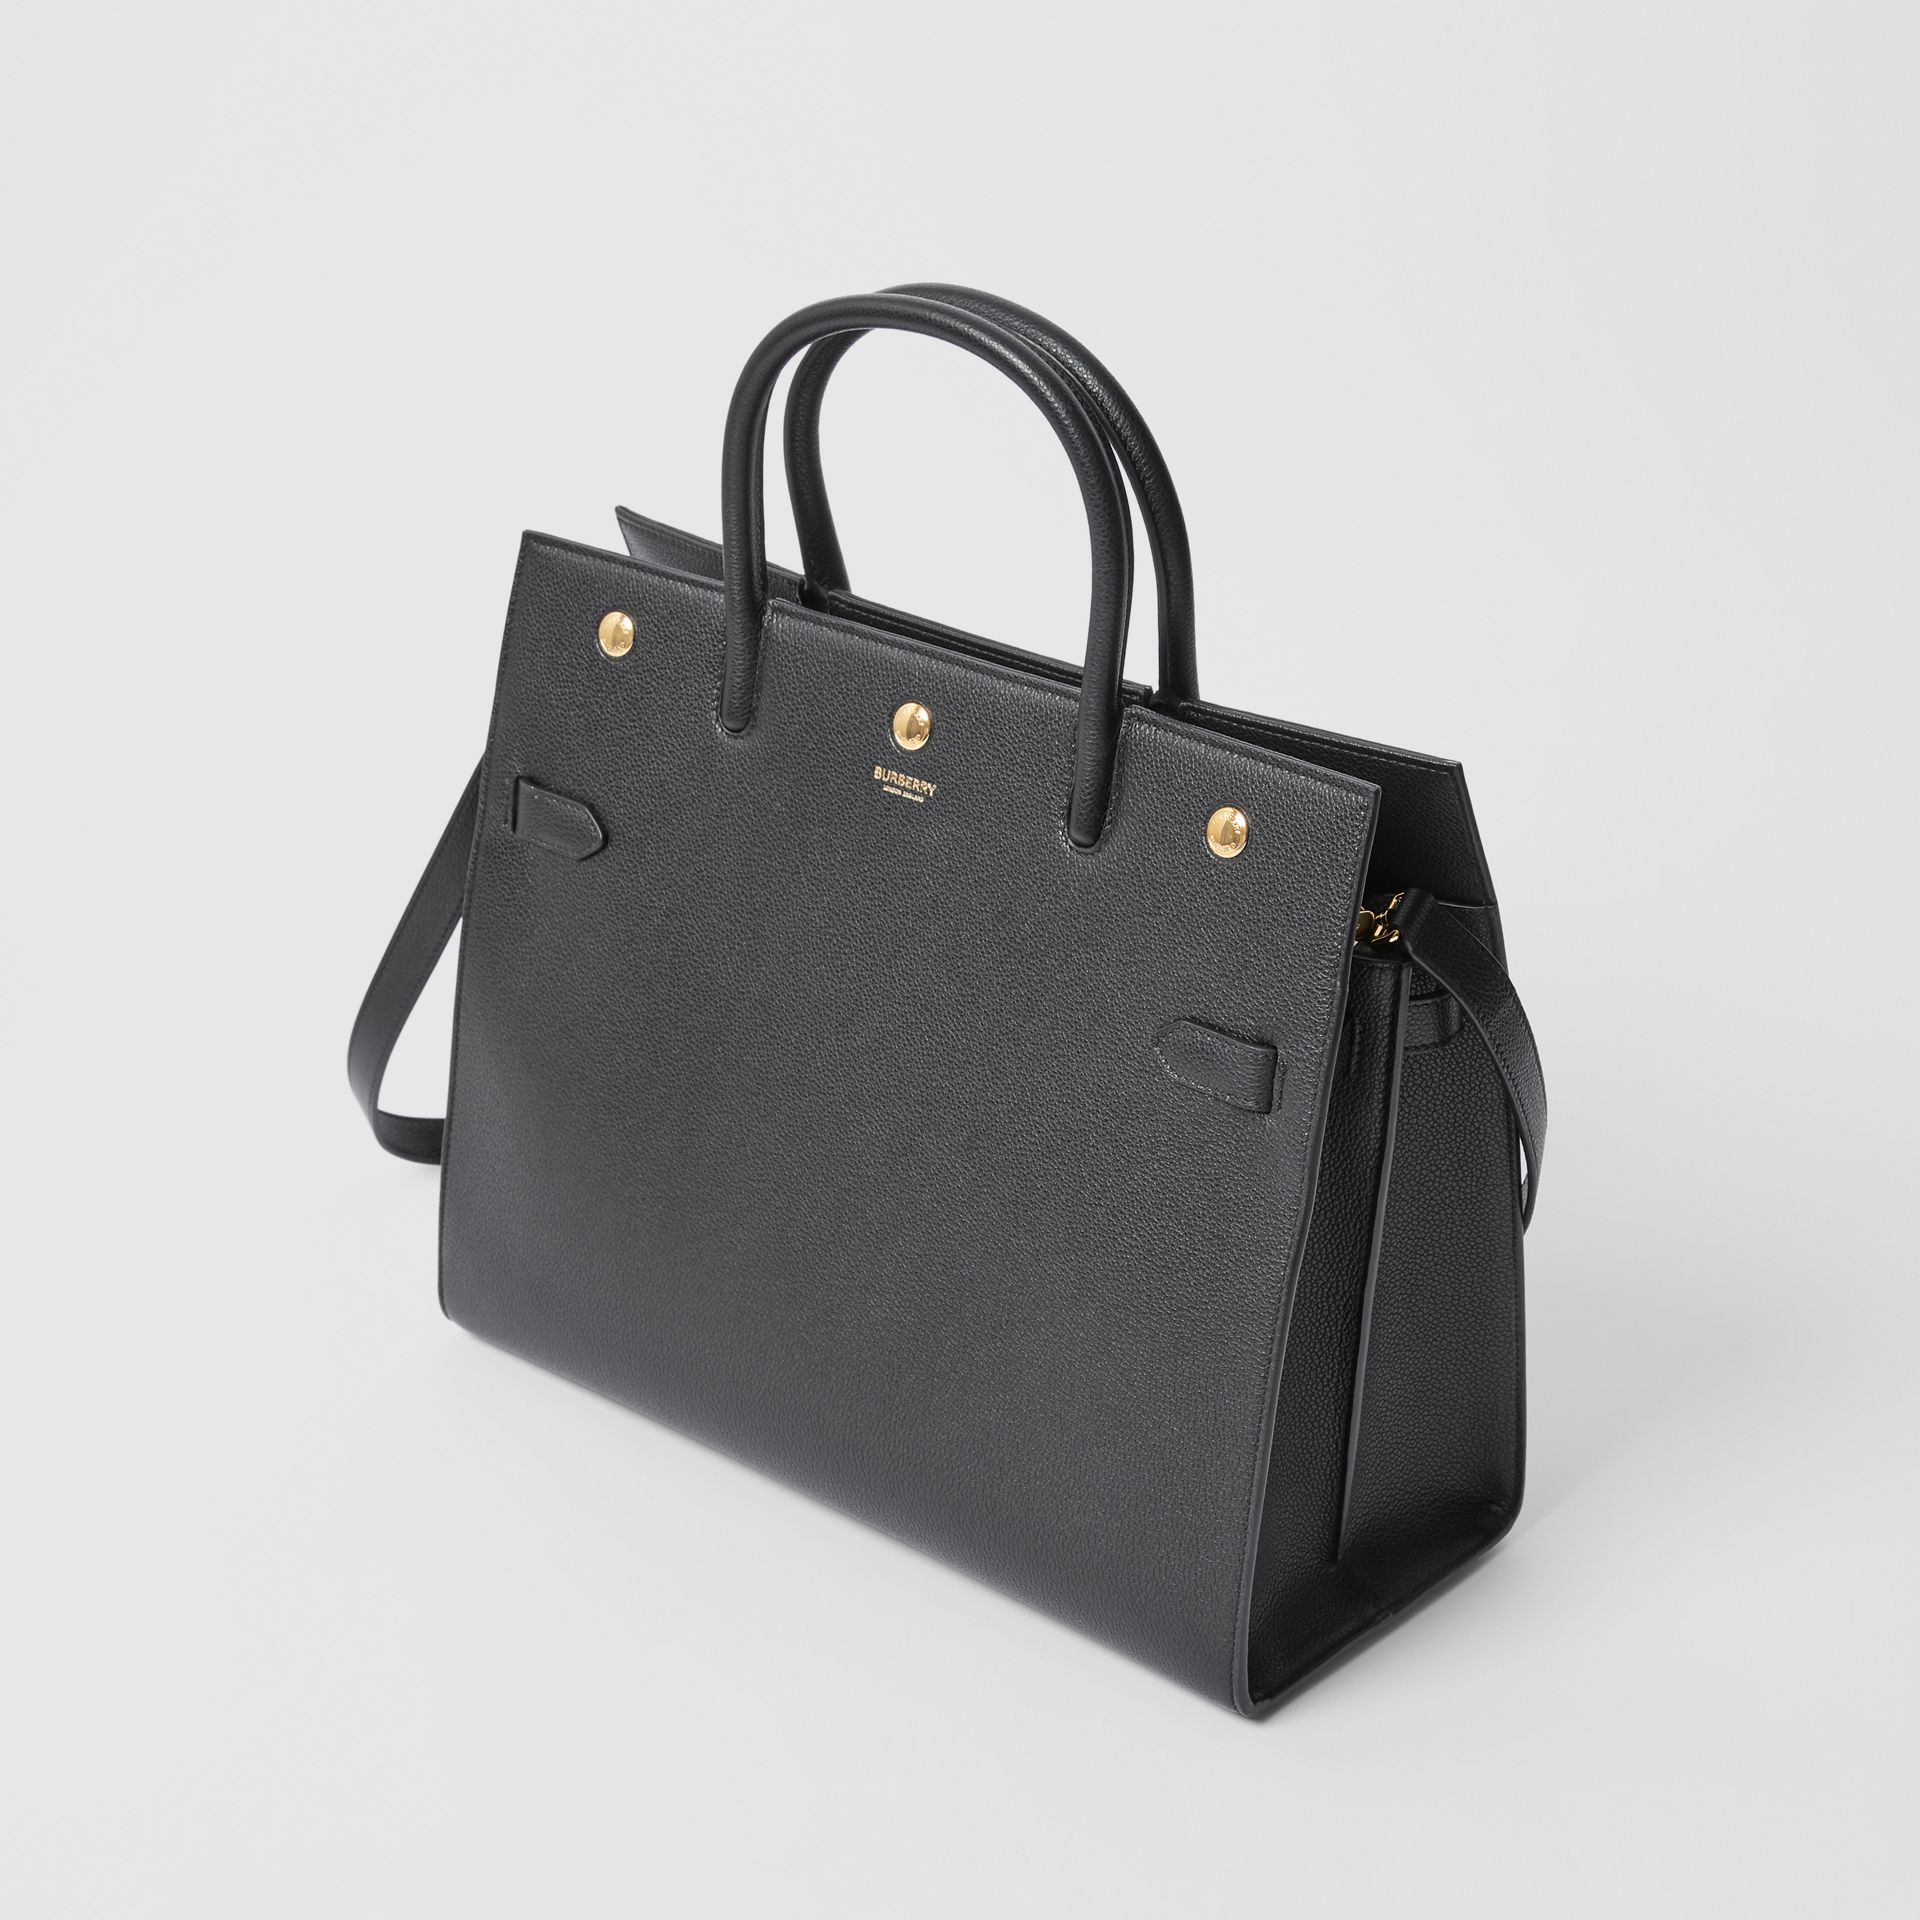 Medium Leather Two-handle Title Bag in Black - Women | Burberry - gallery image 3